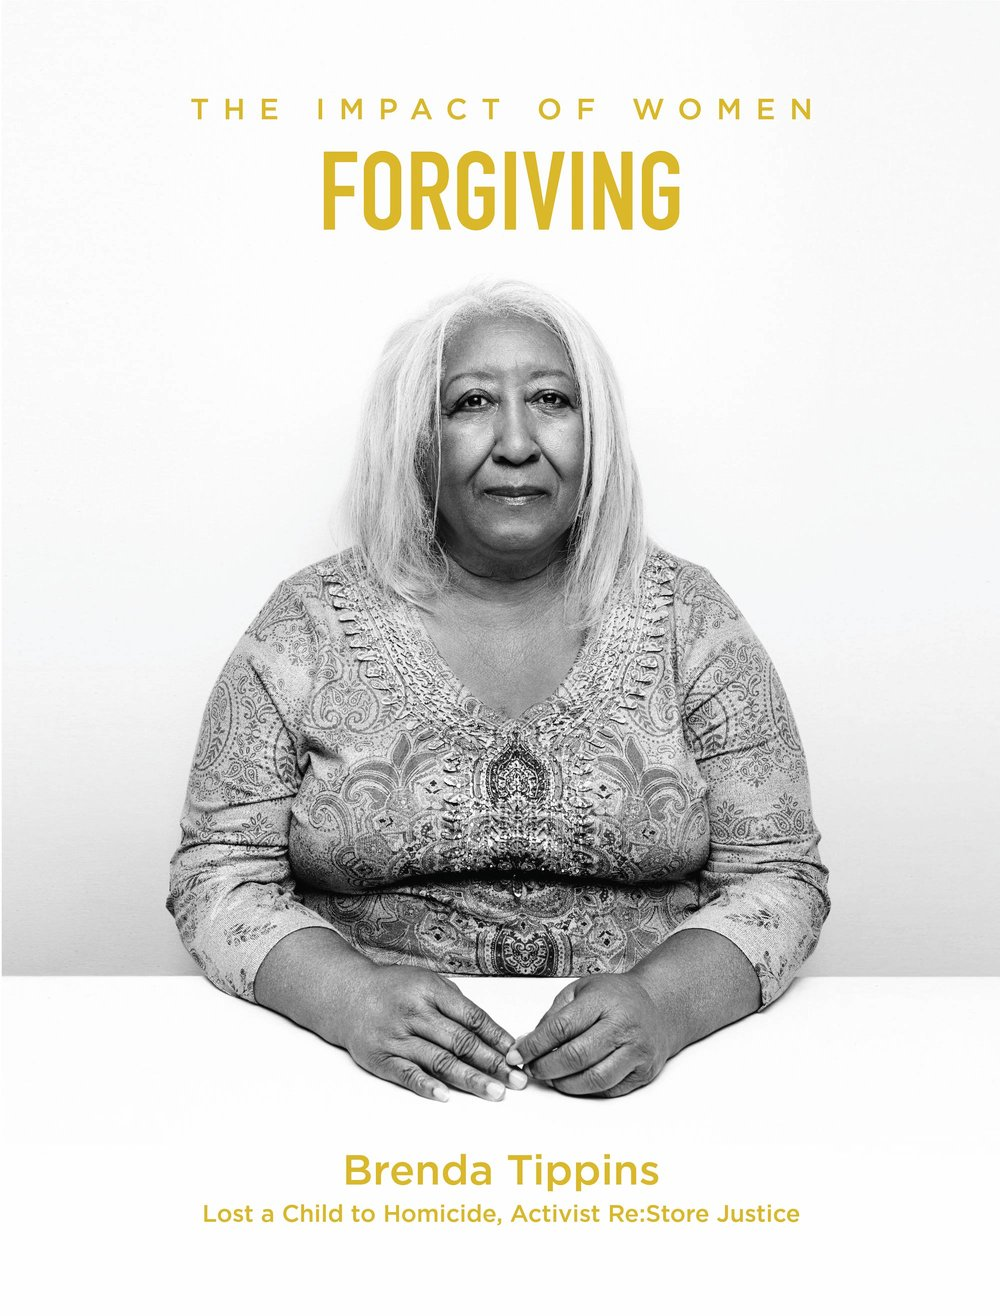 Brenda Tippins is Forgiving